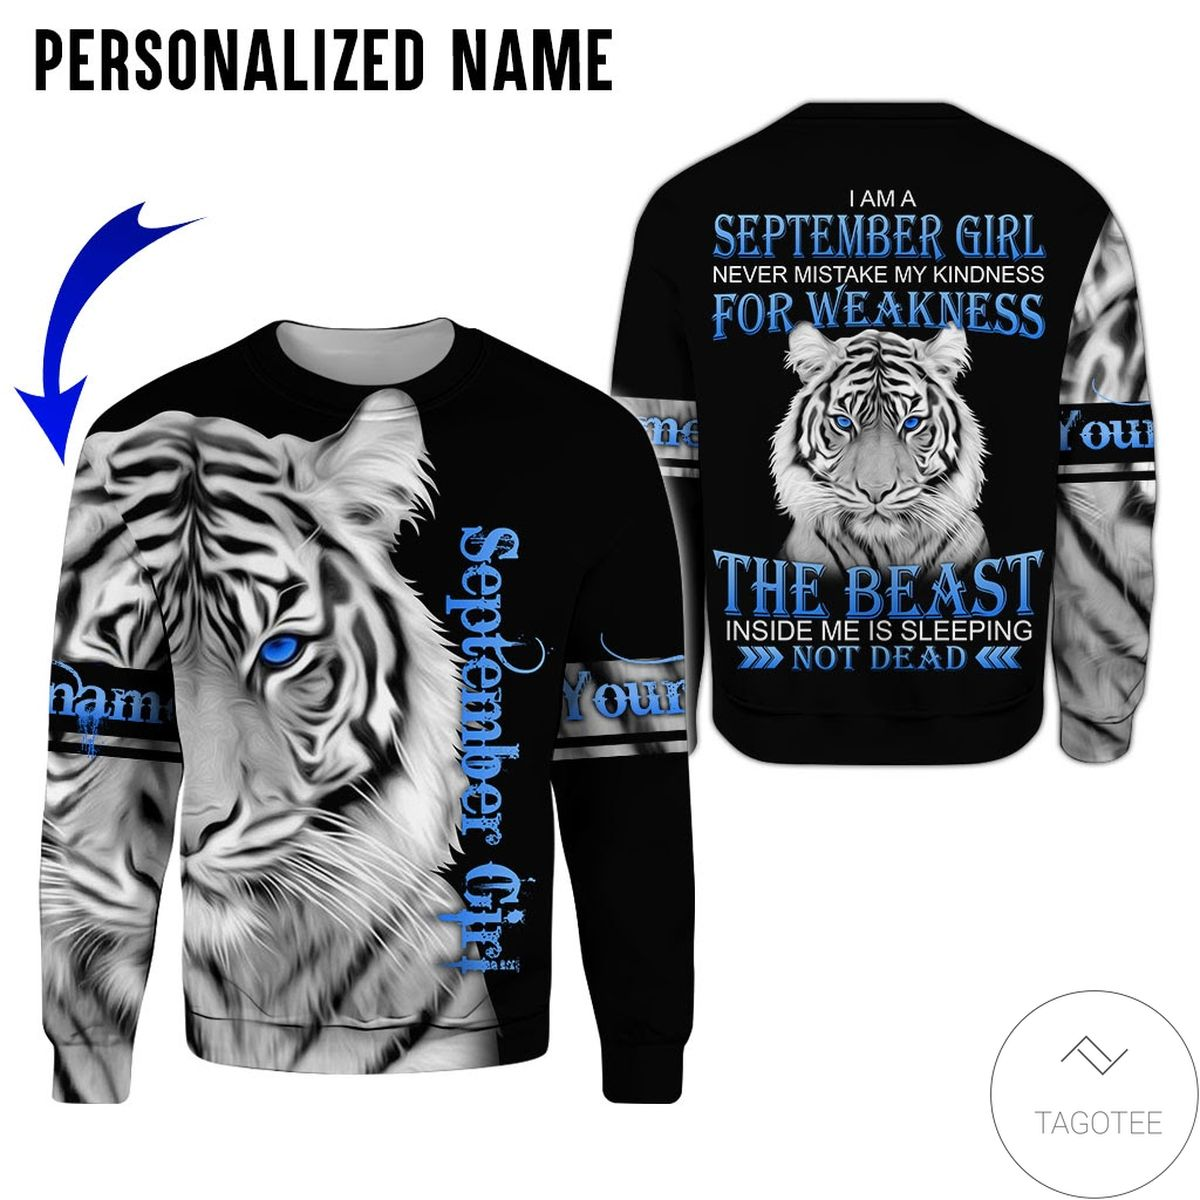 Adorable Personalized Name Tiger September Girl The Beast Not Dead All Over Print Hoodie